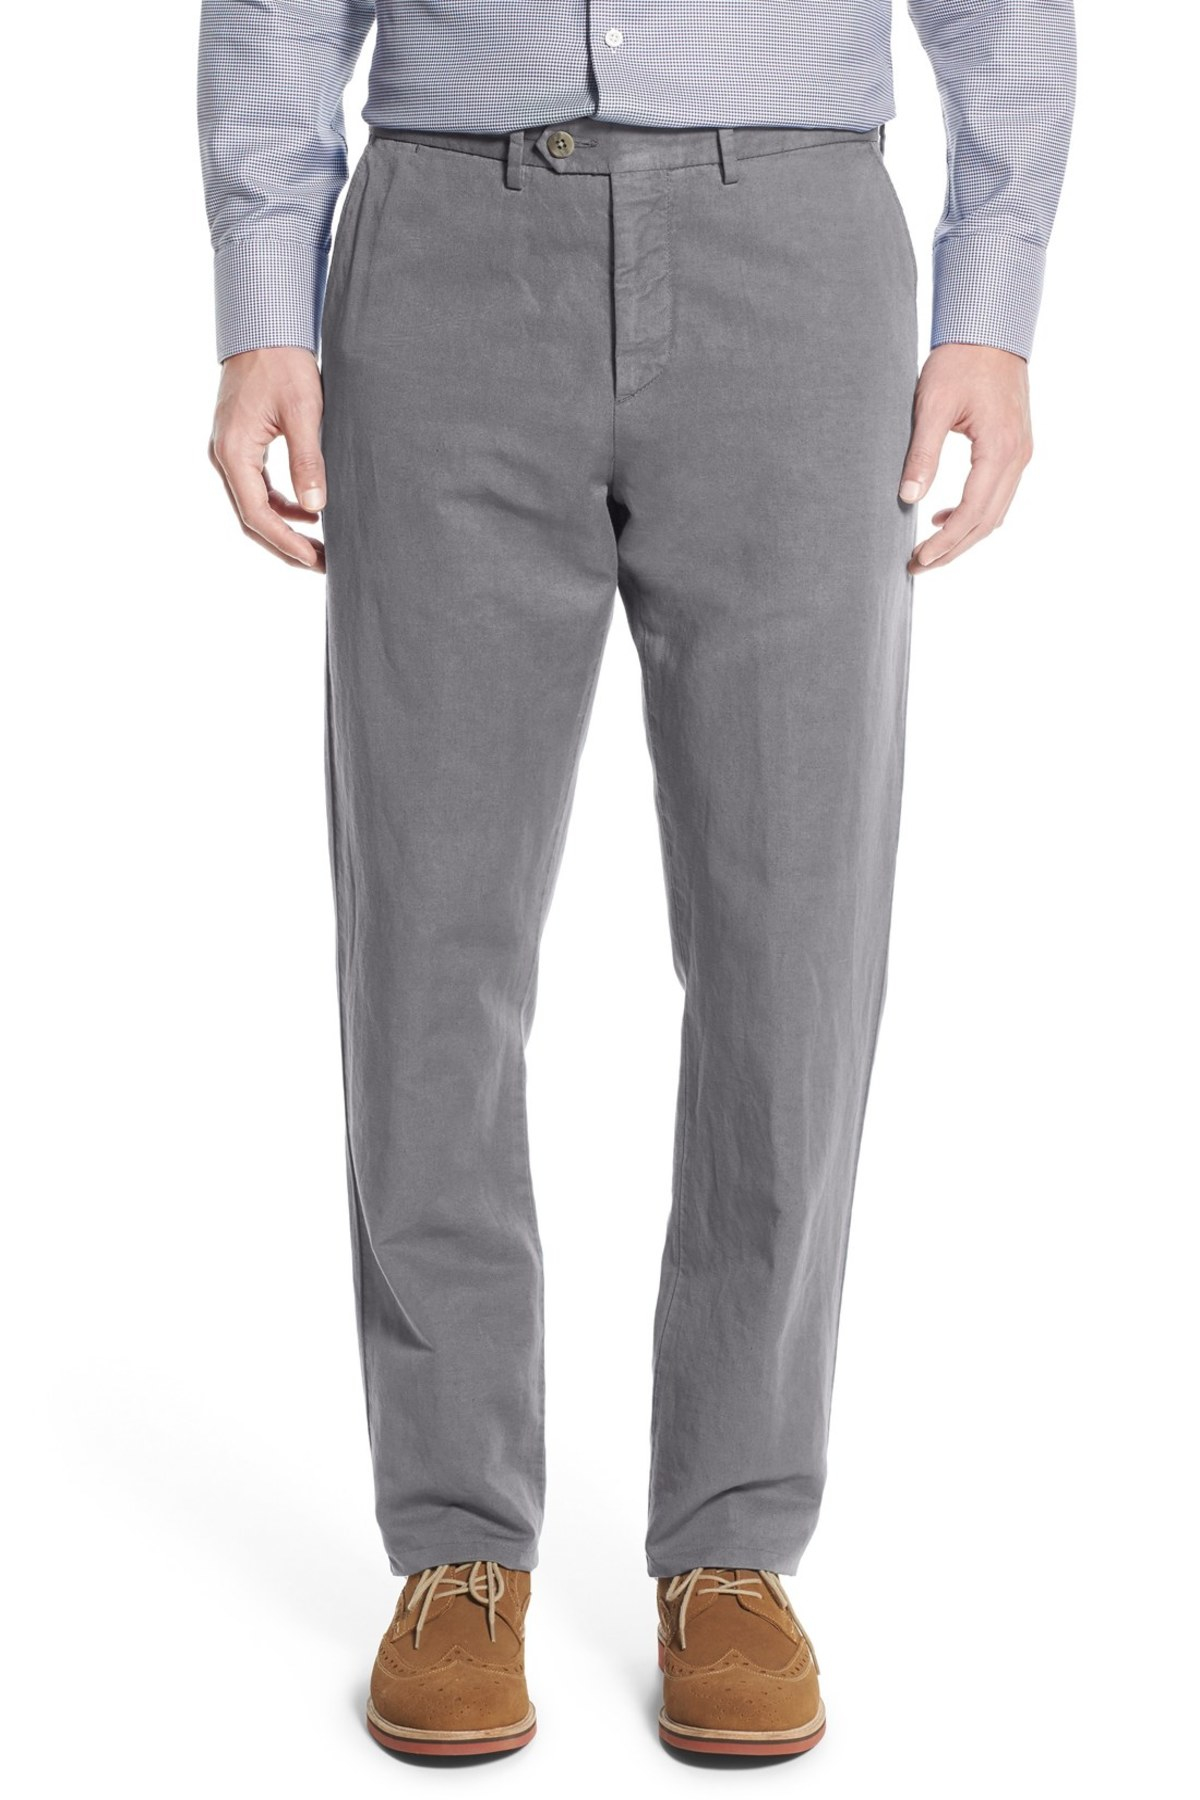 John w nordstrom tailored fit chinos in gray for men lyst for Nordstrom men s dress shirt fit guide